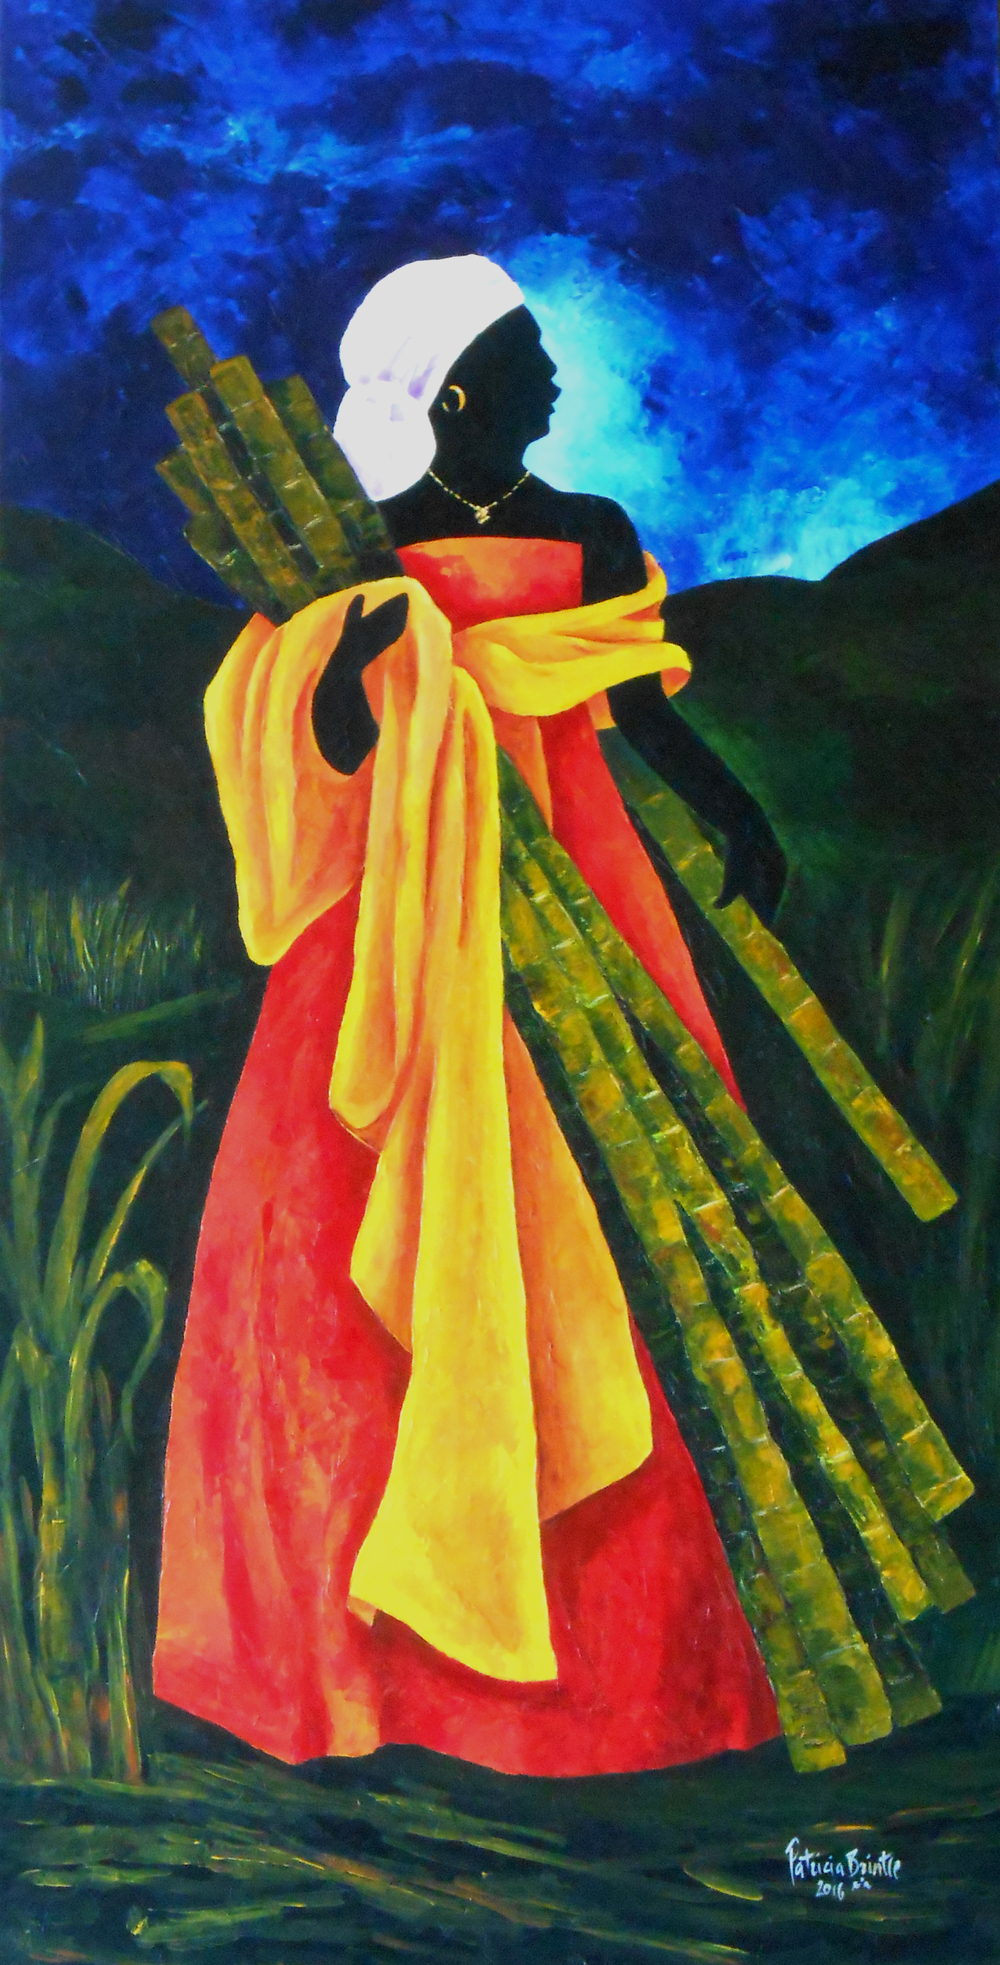 Season sugarcane I 48x24 Acrylic on canvas 2016 ps.jpg